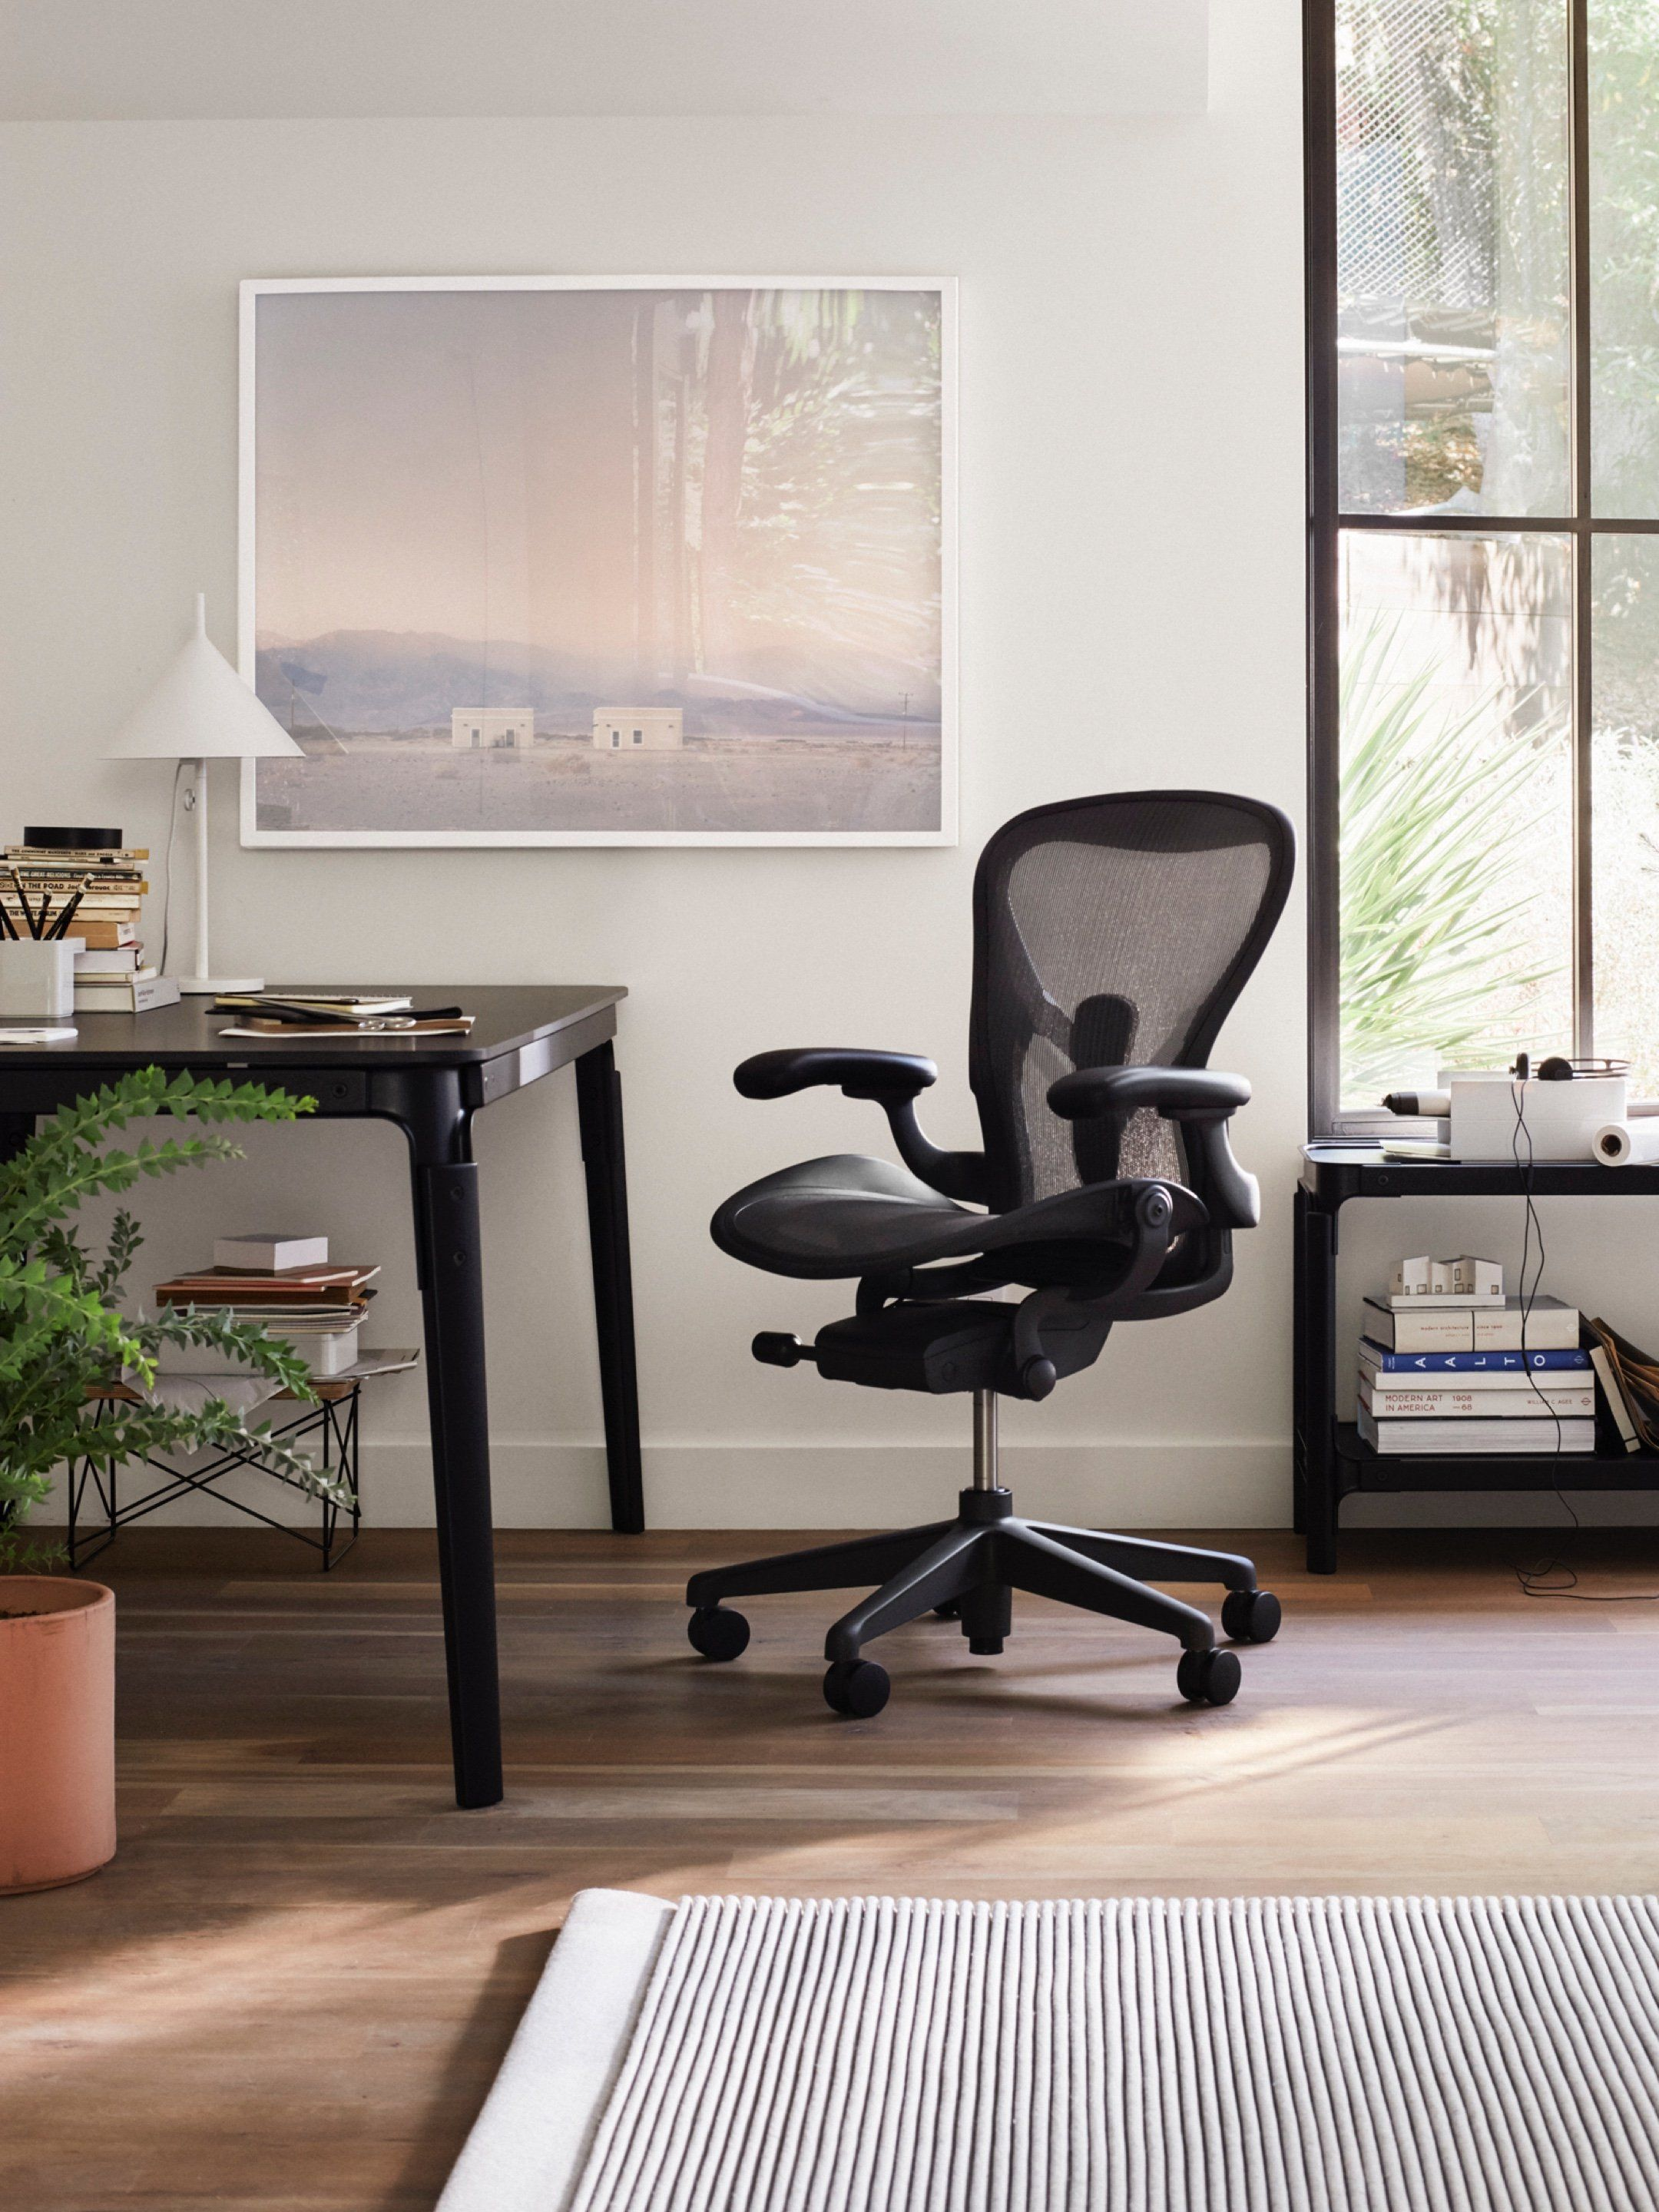 Aeron Chair in 2020 Wooden desk chairs, Chair, Ergonomic